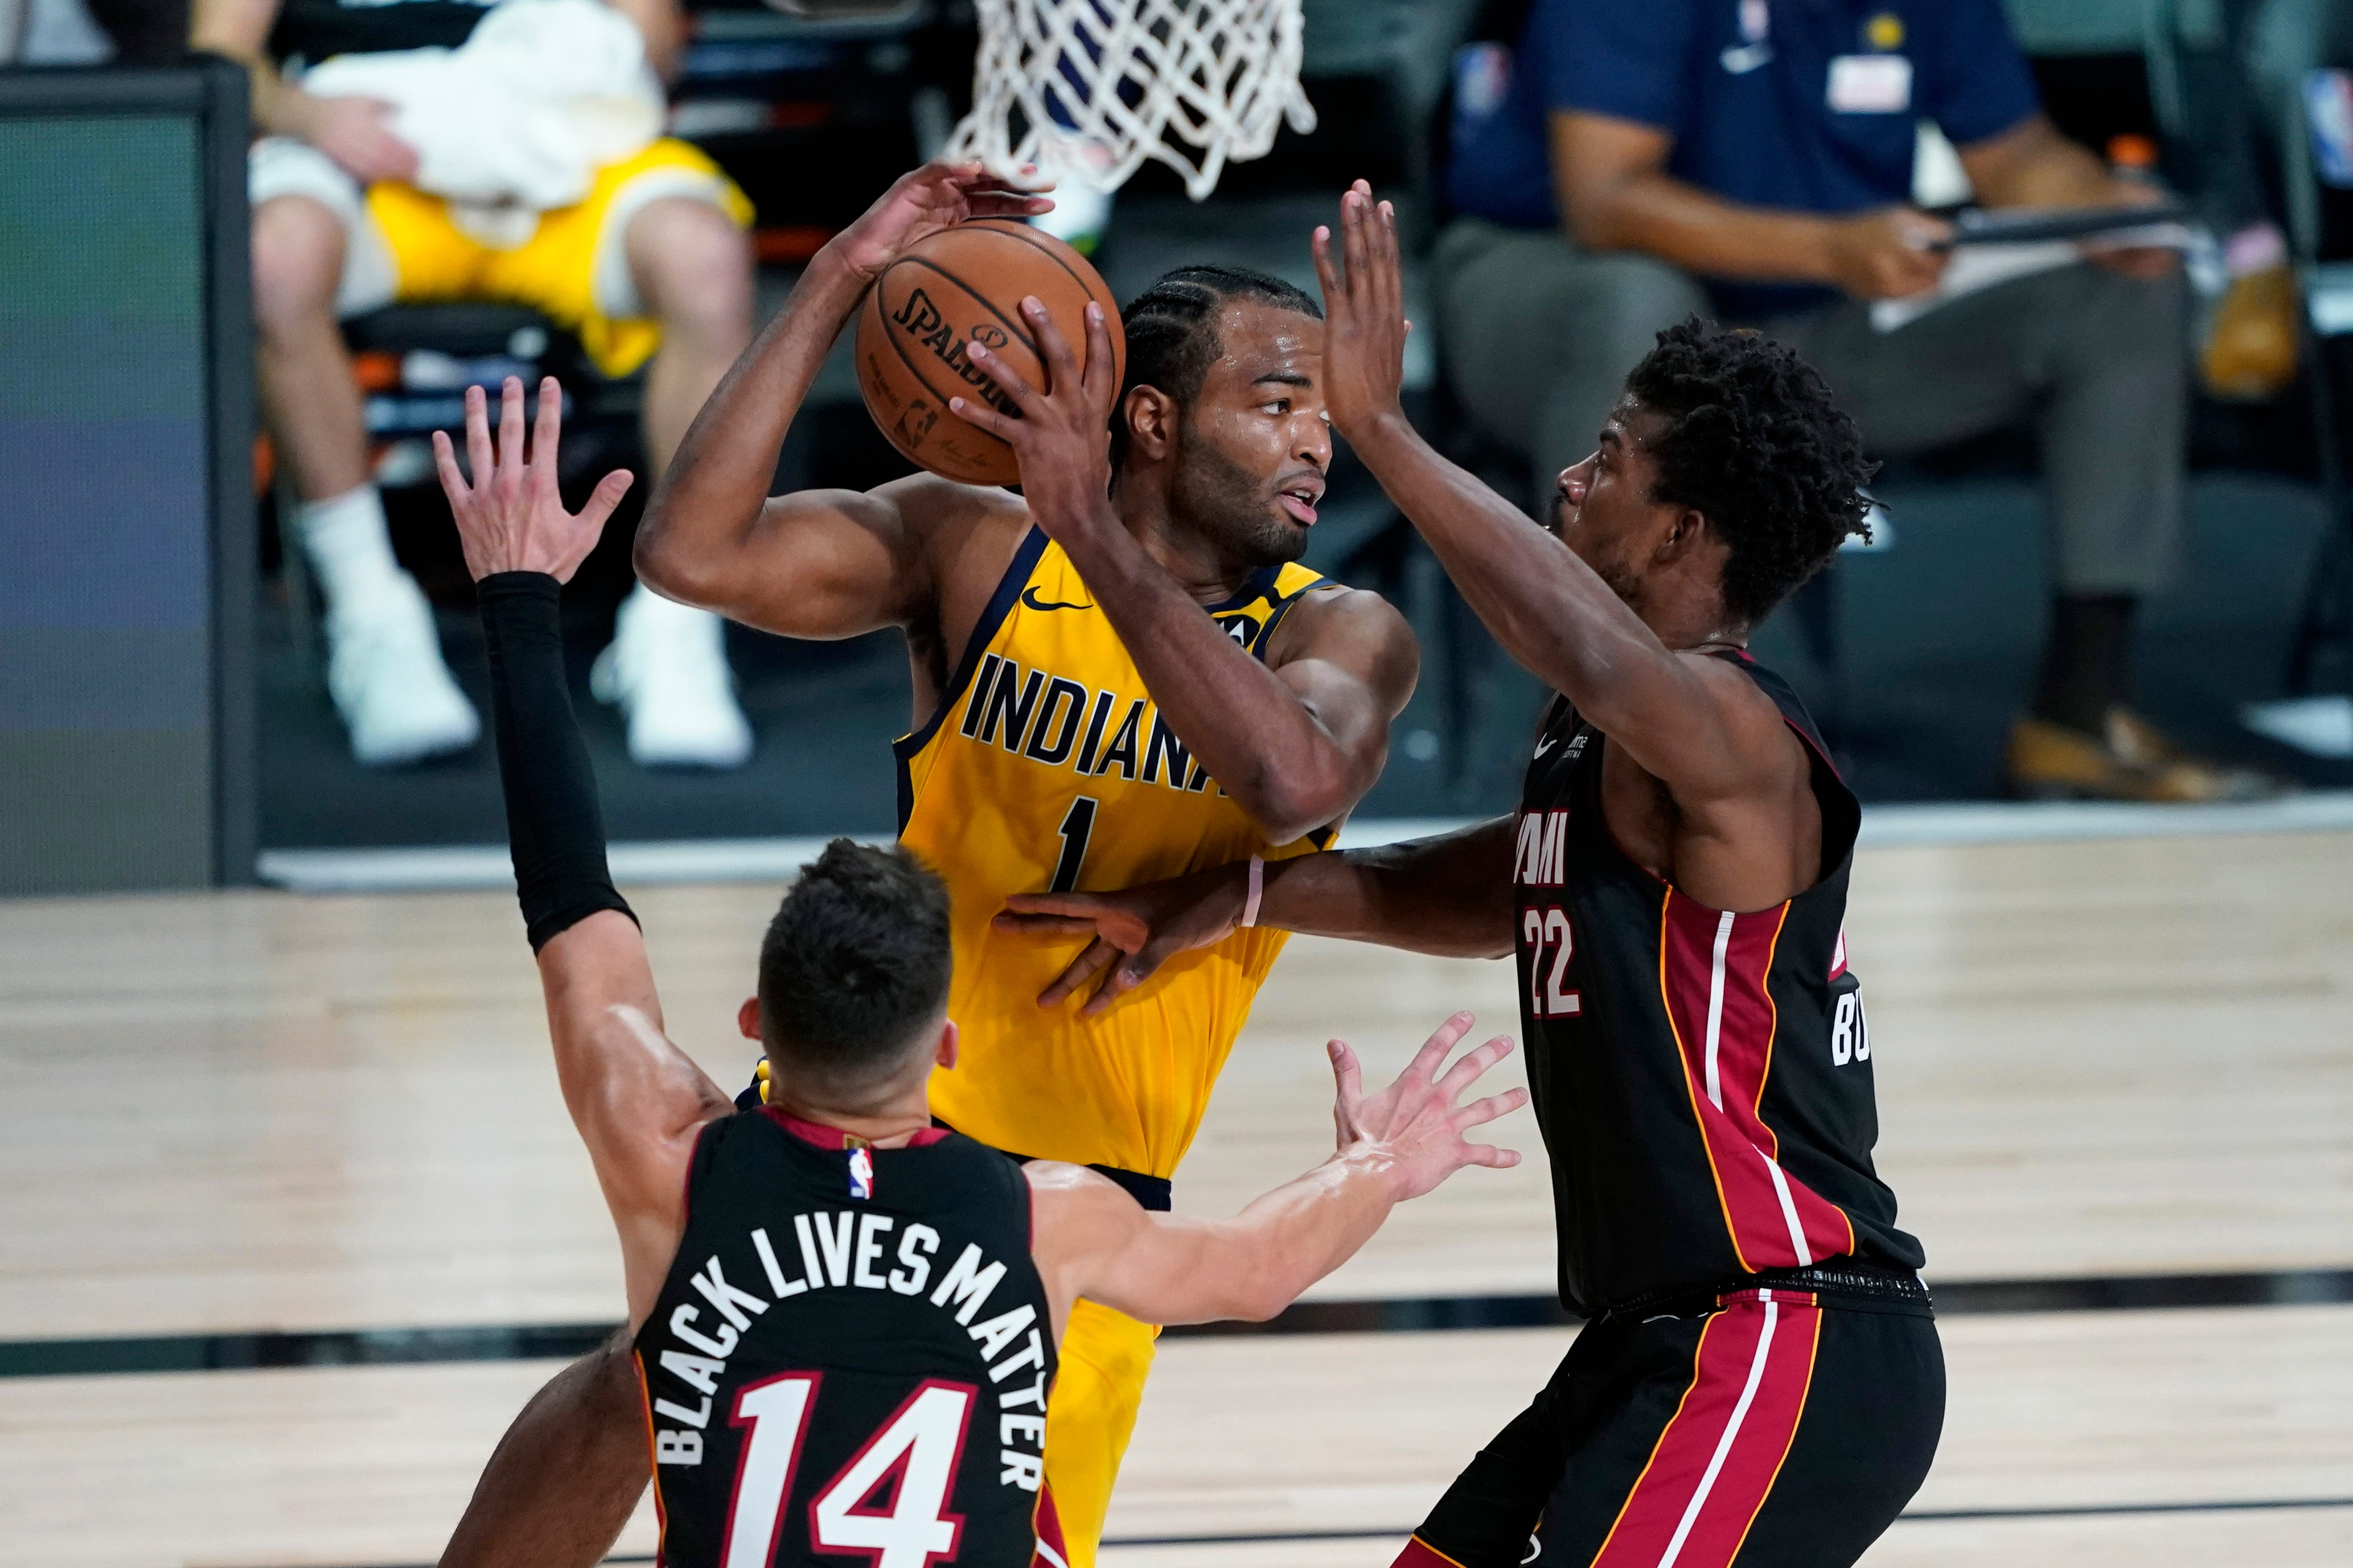 Nba Playoffs 2020 Live Updates Of Pacers Vs Heat Game 1